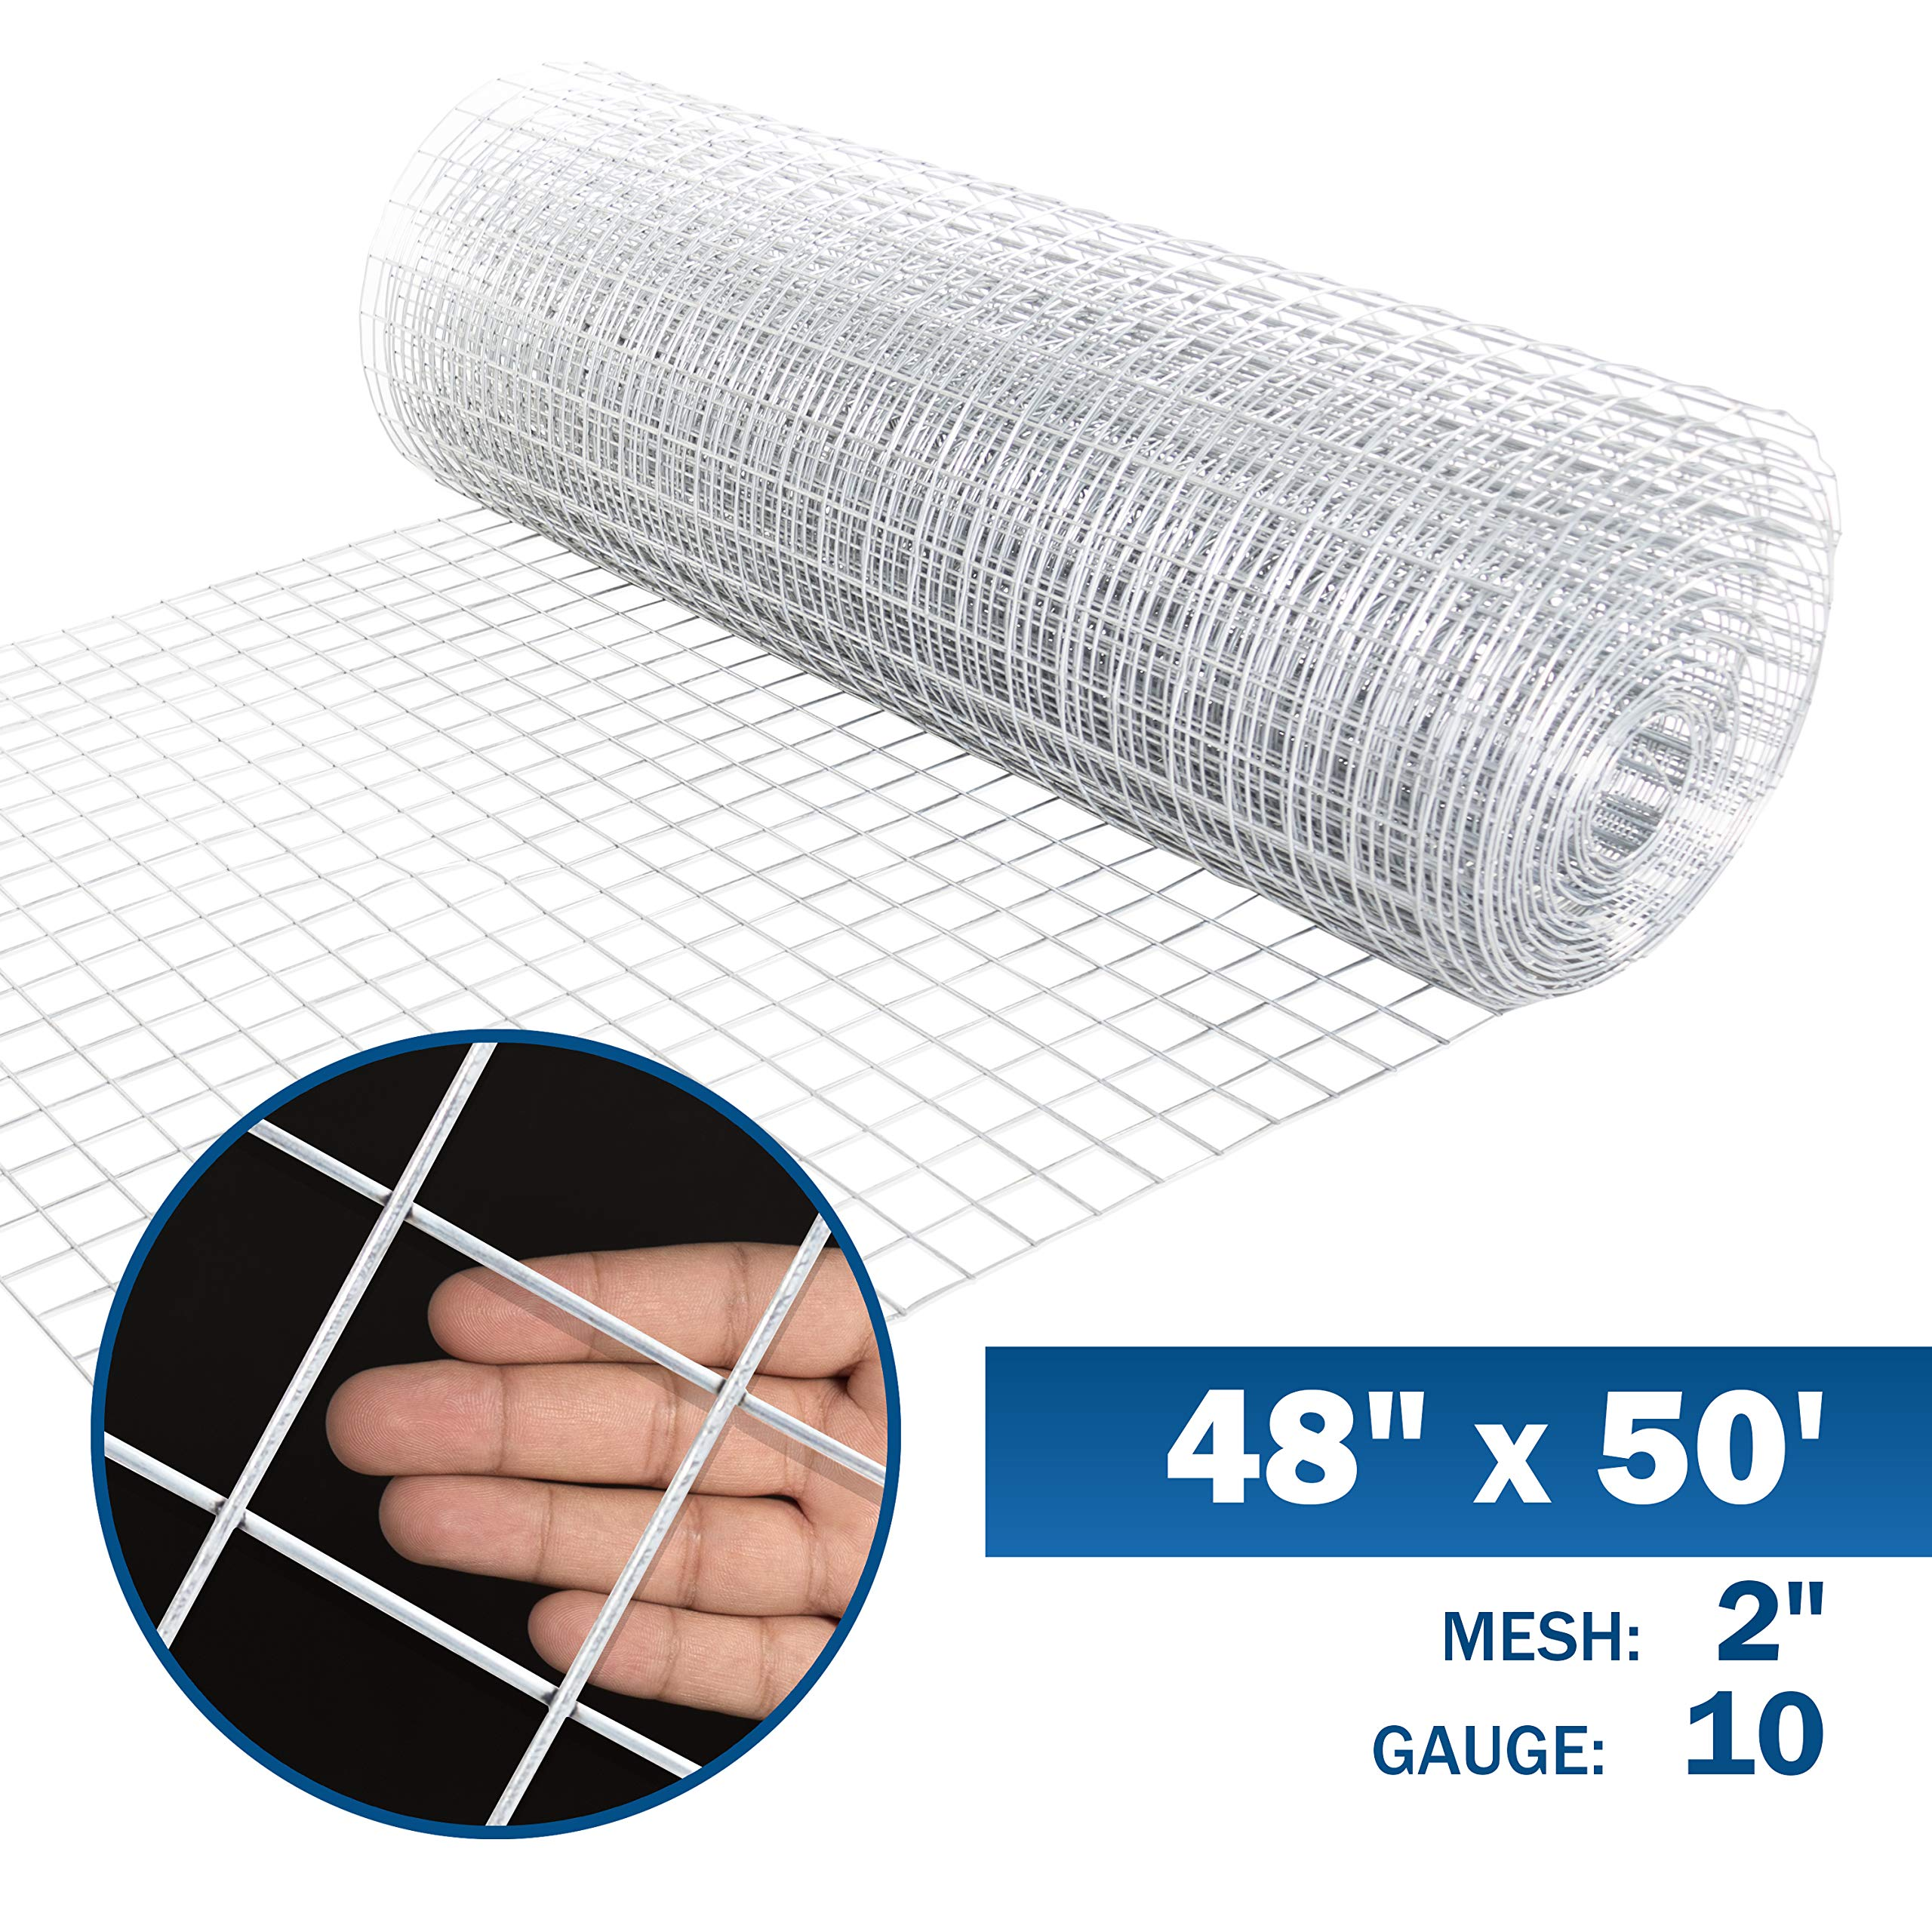 Fencer Wire 10 Gauge Galvanized Welded Wire Mesh Size 2 inch by 2 inch (4 ft. x 50 ft.) by Fencer Wire